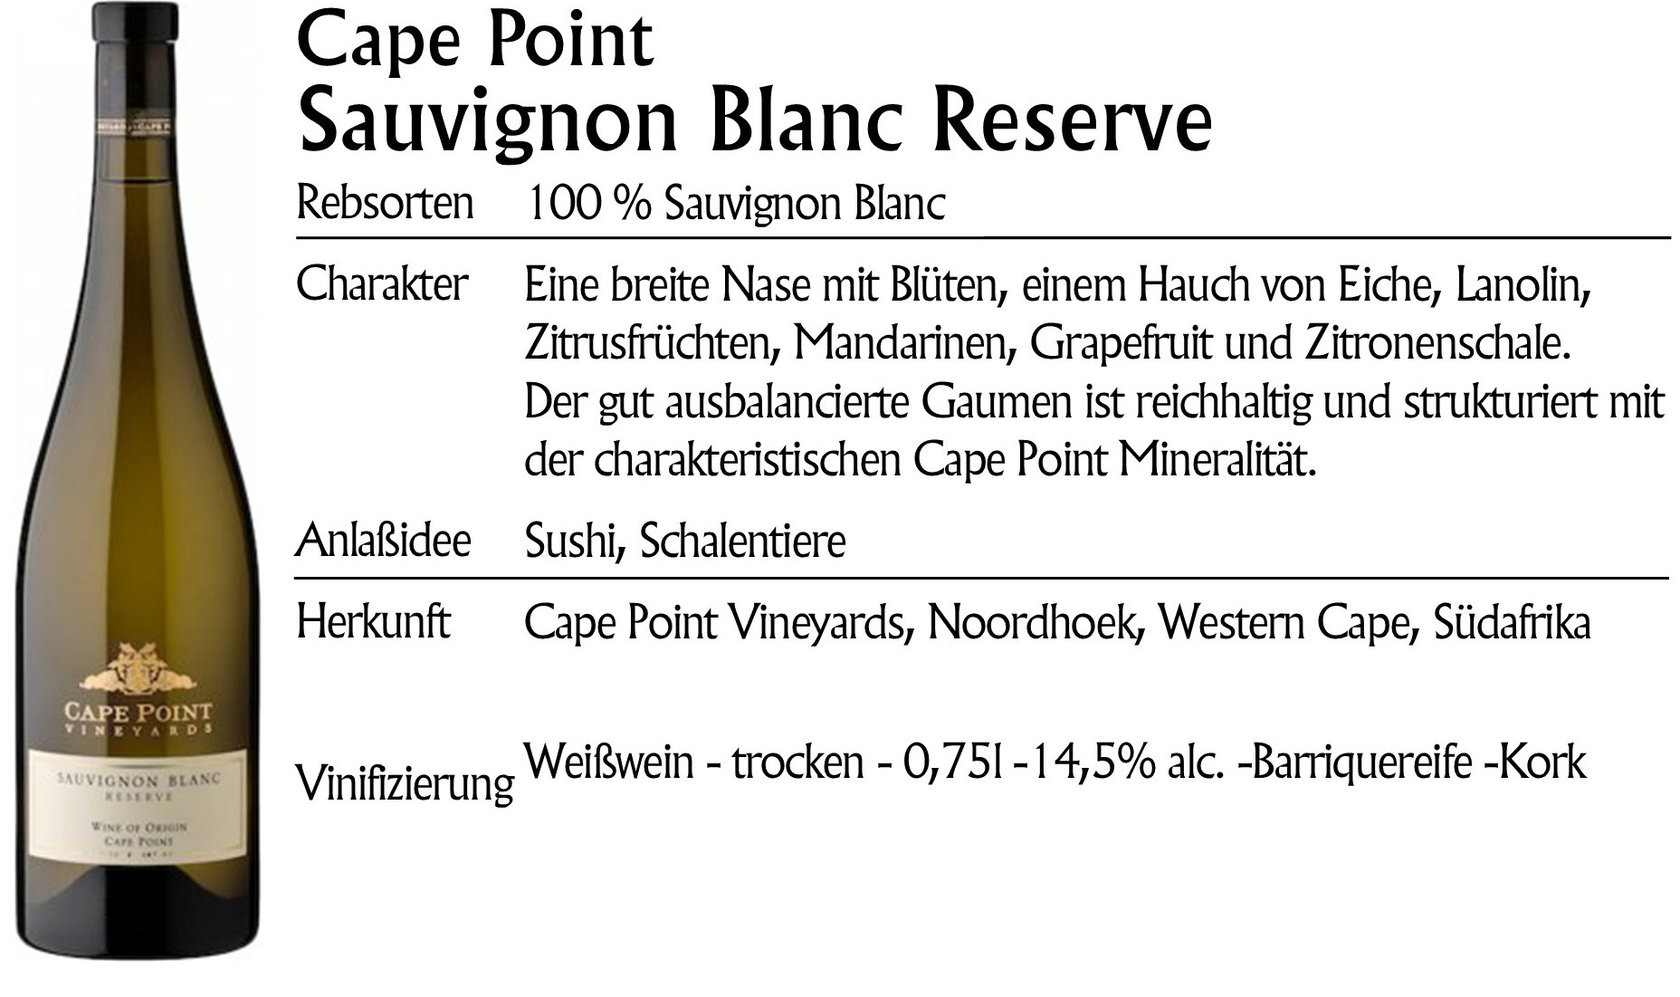 Cape Point Sauvignon Blanc Reserve 2017